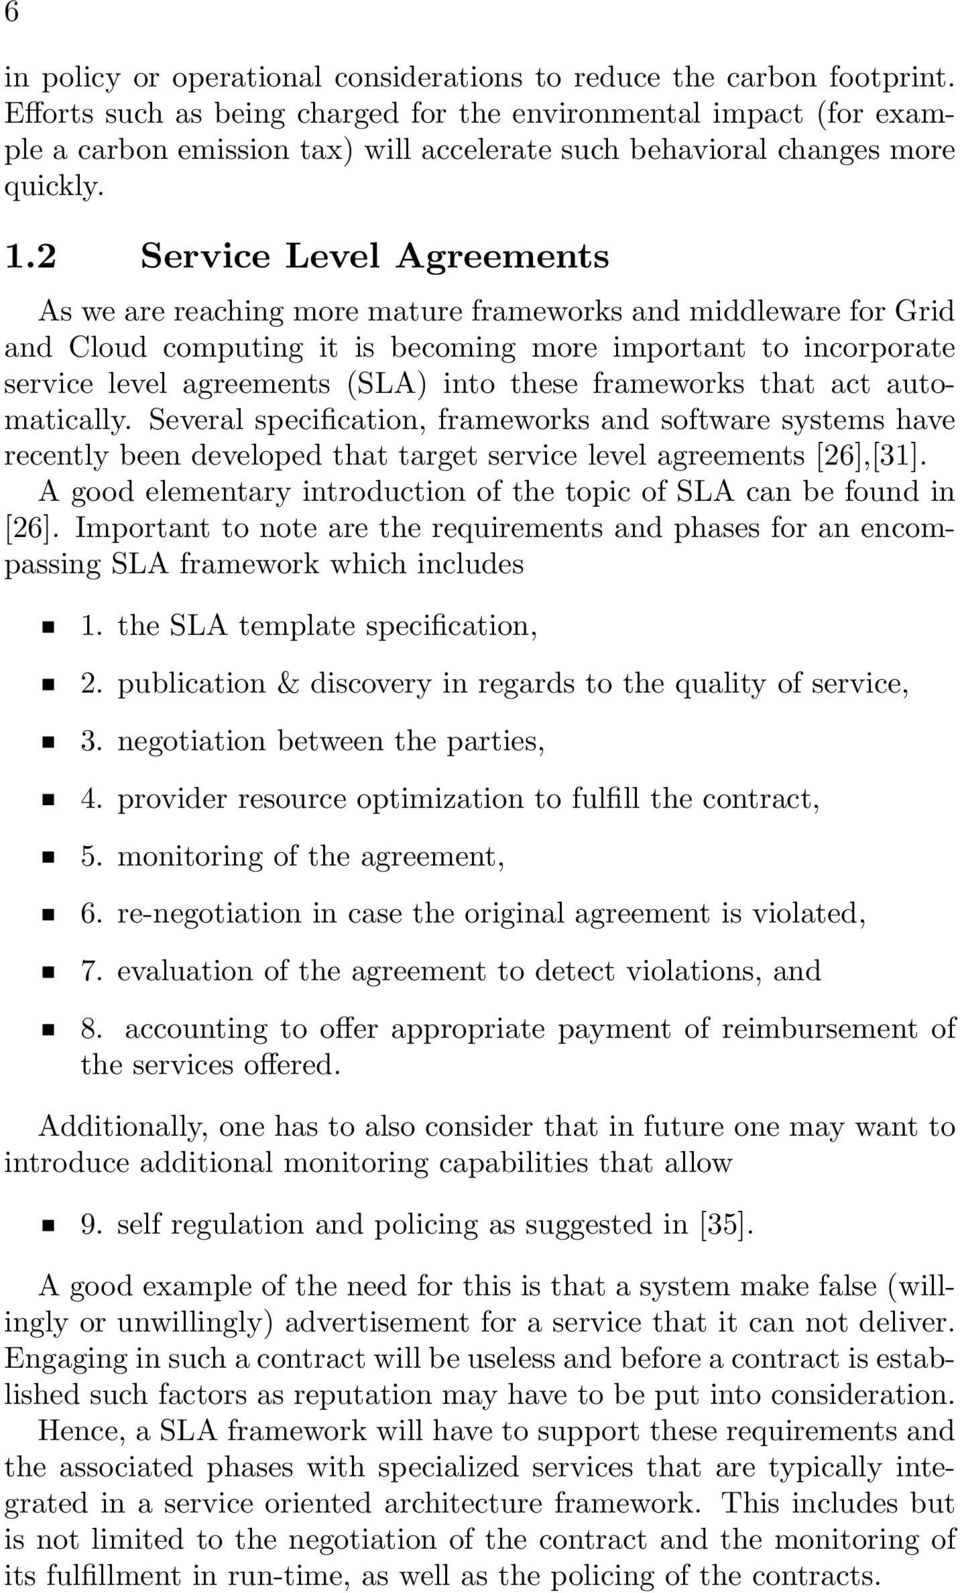 2 Service Level Agreements As we are reaching more mature frameworks and middleware for Grid and Cloud computing it is becoming more important to incorporate service level agreements (SLA) into these